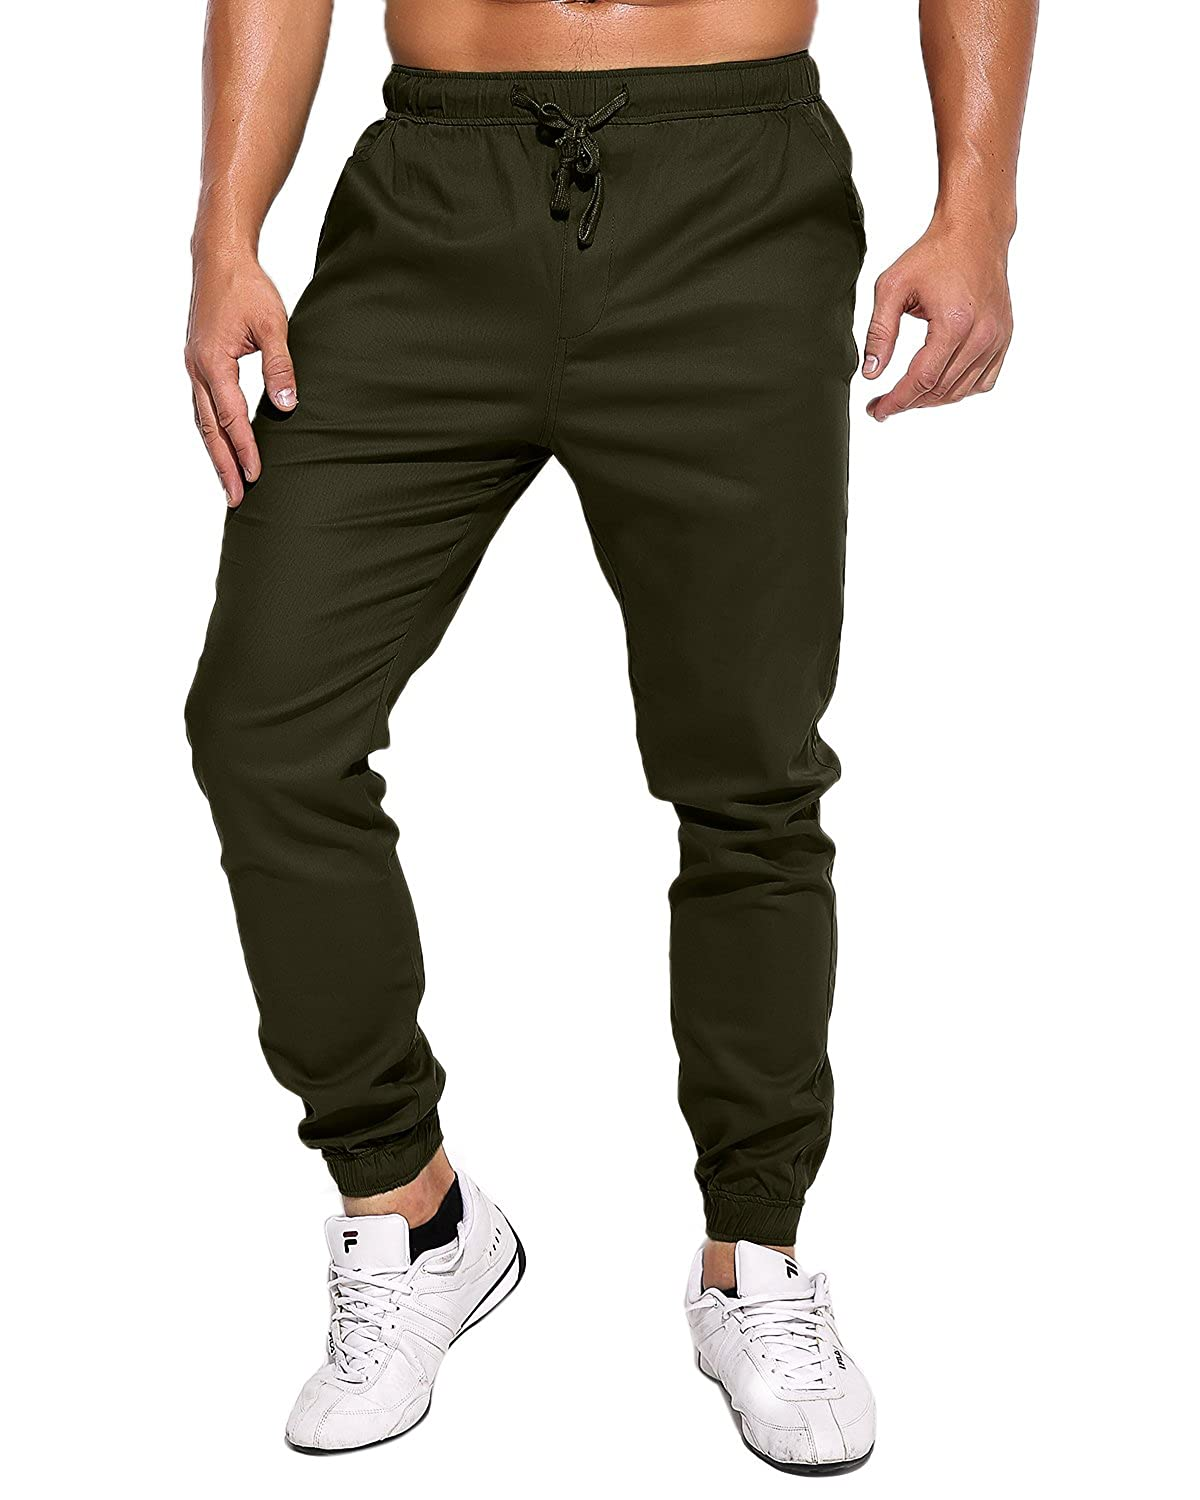 73141bfaa MODCHOK Men's Chino Jogger Pants Casusal Workout Trousers Slim Fit  Sweatpants at Amazon Men's Clothing store: